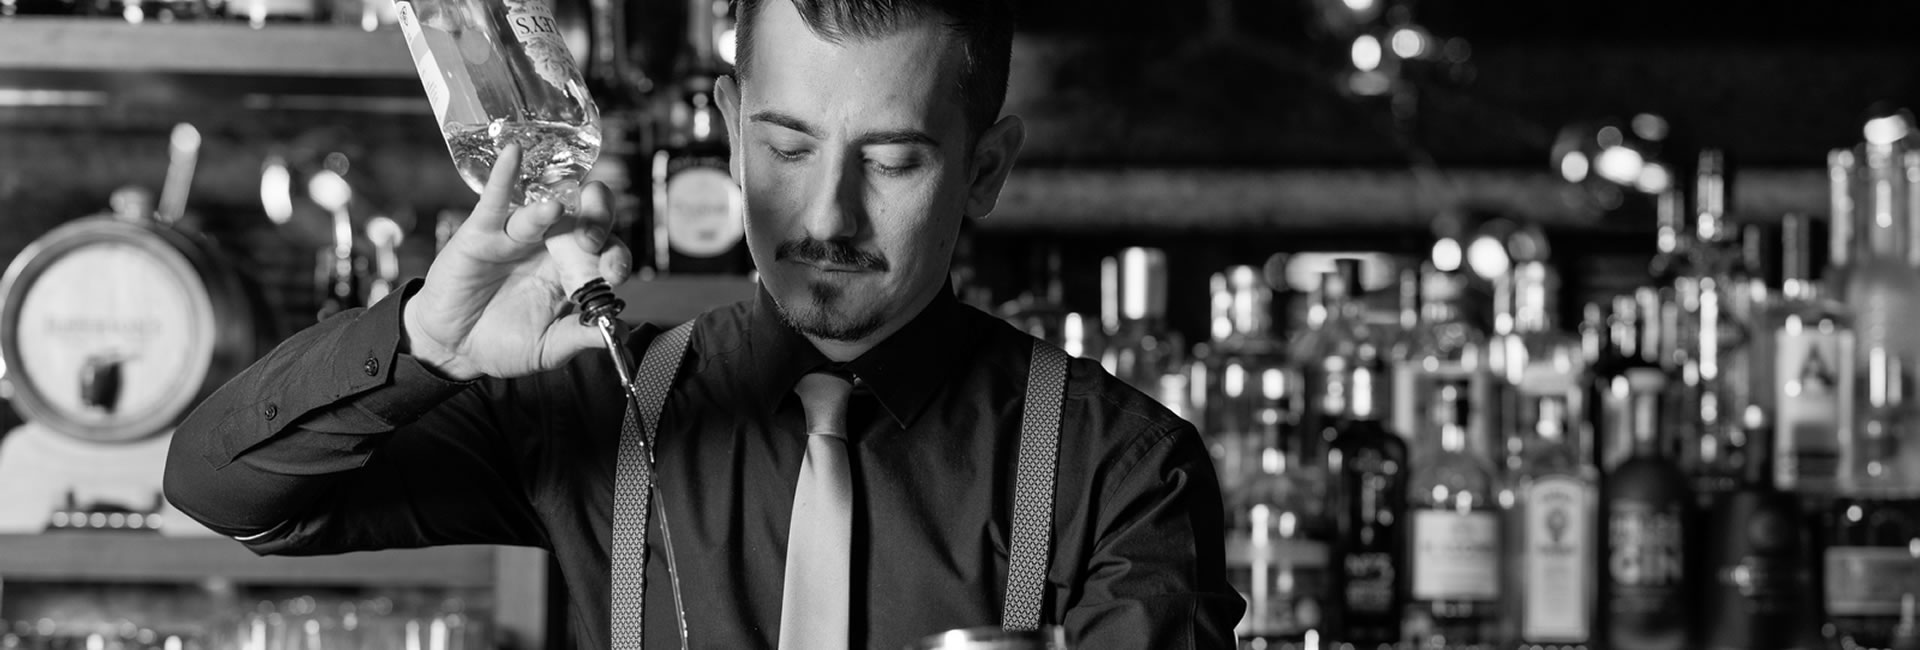 Learn about the meticulous Martini craft and create a true cocktail in this exclusive masterclass